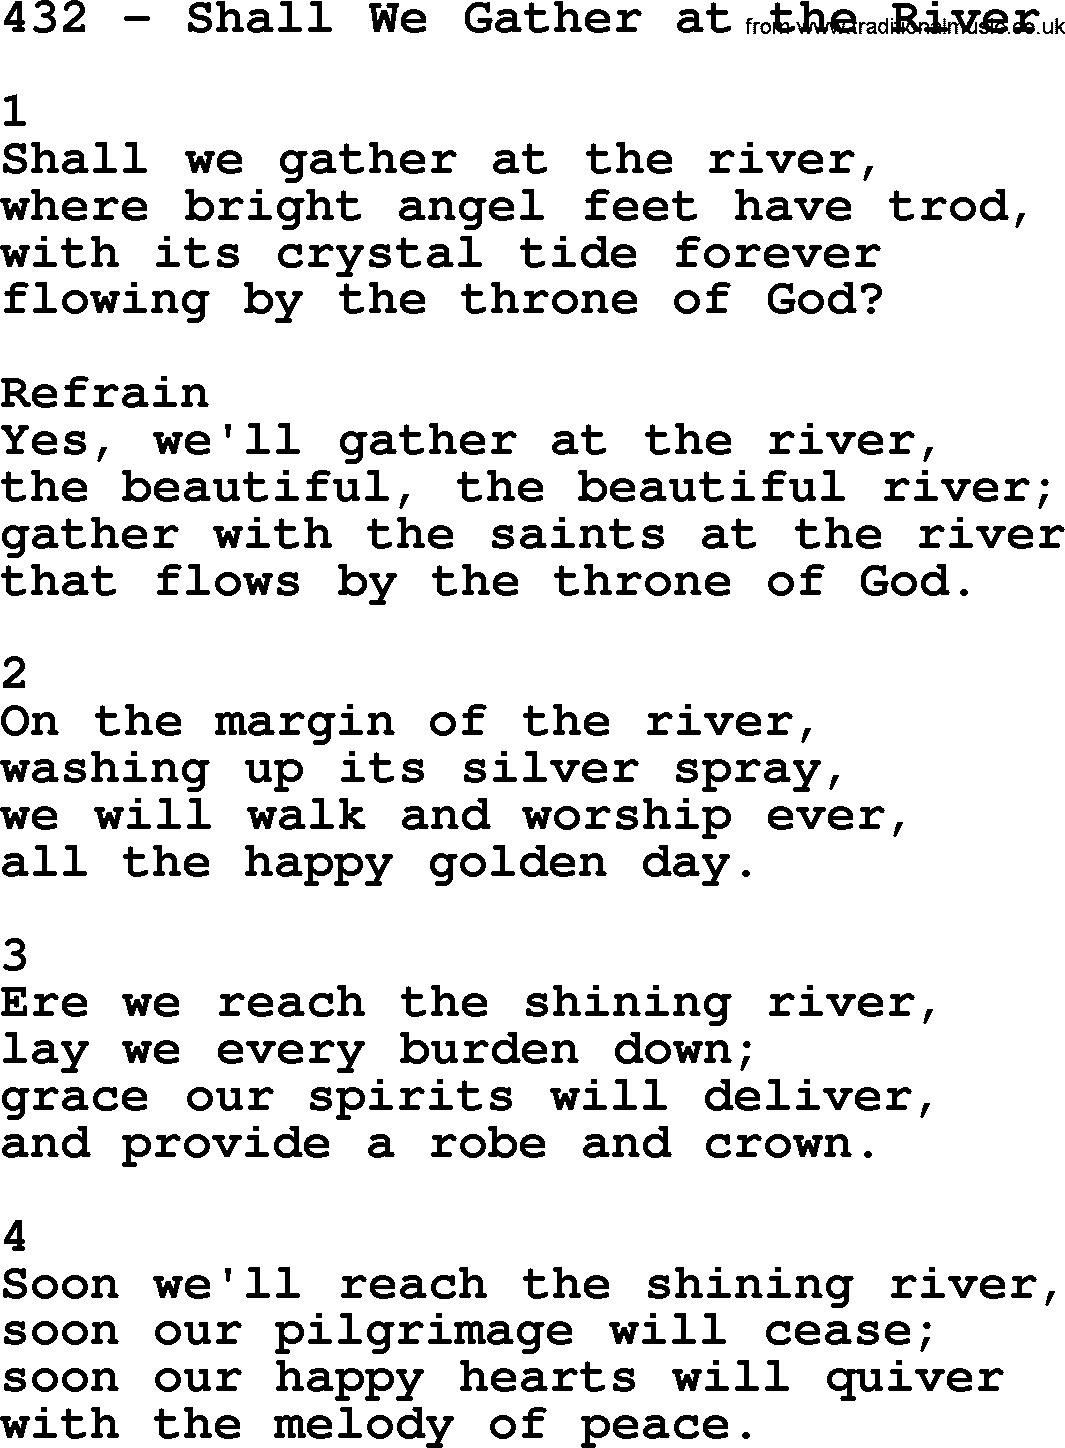 Adventist Hymnal, Song: 432-Shall We Gather At The River, with